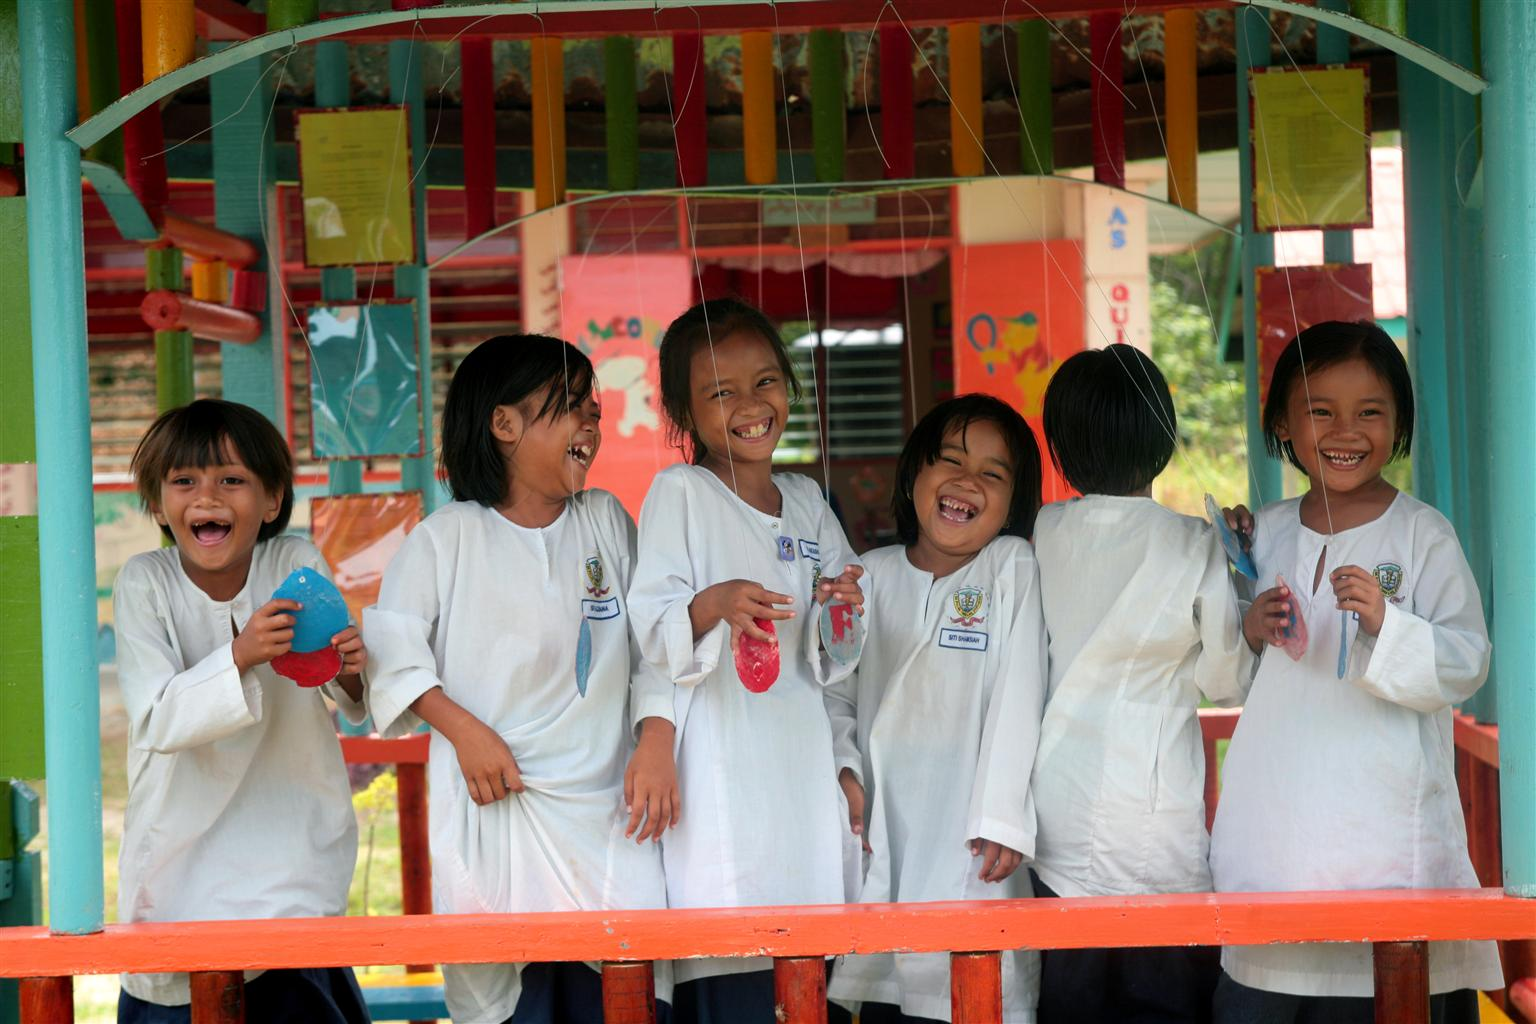 Children from the Bajau ethnic group laugh and play during recess at Timbang Island Primary School, on Timbang Island in the state of Sabah. UNICEF provides rural schools in Sabah with supplies and teacher training, part of efforts to improve literacy among rural and indigenous children.  In September 2007 in Malaysia, gaps in education, health care and other services persist, particularly in rural areas, where rates of poverty remain high. Among the rural poor are indigenous ethnic groups collectively known as the Orang Asli, whose cultural and geographic isolation from the urban majority contribute to extremely high dropout rates. Some 80 per cent of Orang Asli children fail to complete secondary school. In response, UNICEF is working with the Government to expand education in remote villages and rural communities. UNICEF also supports programmes that encourage school retention by incorporating Orang Asli folk tales and storytelling techniques into the curriculum. In all parts of the country, health care for women and children is also inadequate. Despite an overall decline in HIV/AIDS rates, there has been a fourfold increase new HIV infections among women, and the number of children affected or orphaned by the disease continues to grow. UNICEF is supporting HIV/AIDS awareness among girls and women, as well as outreach programmes for injecting drug users, the largest contributors to the spread of HIV/AIDS. In a separate initiative, UNICEF is working with the Ministry of Health to promote the detection of autism in toddlers and young children.